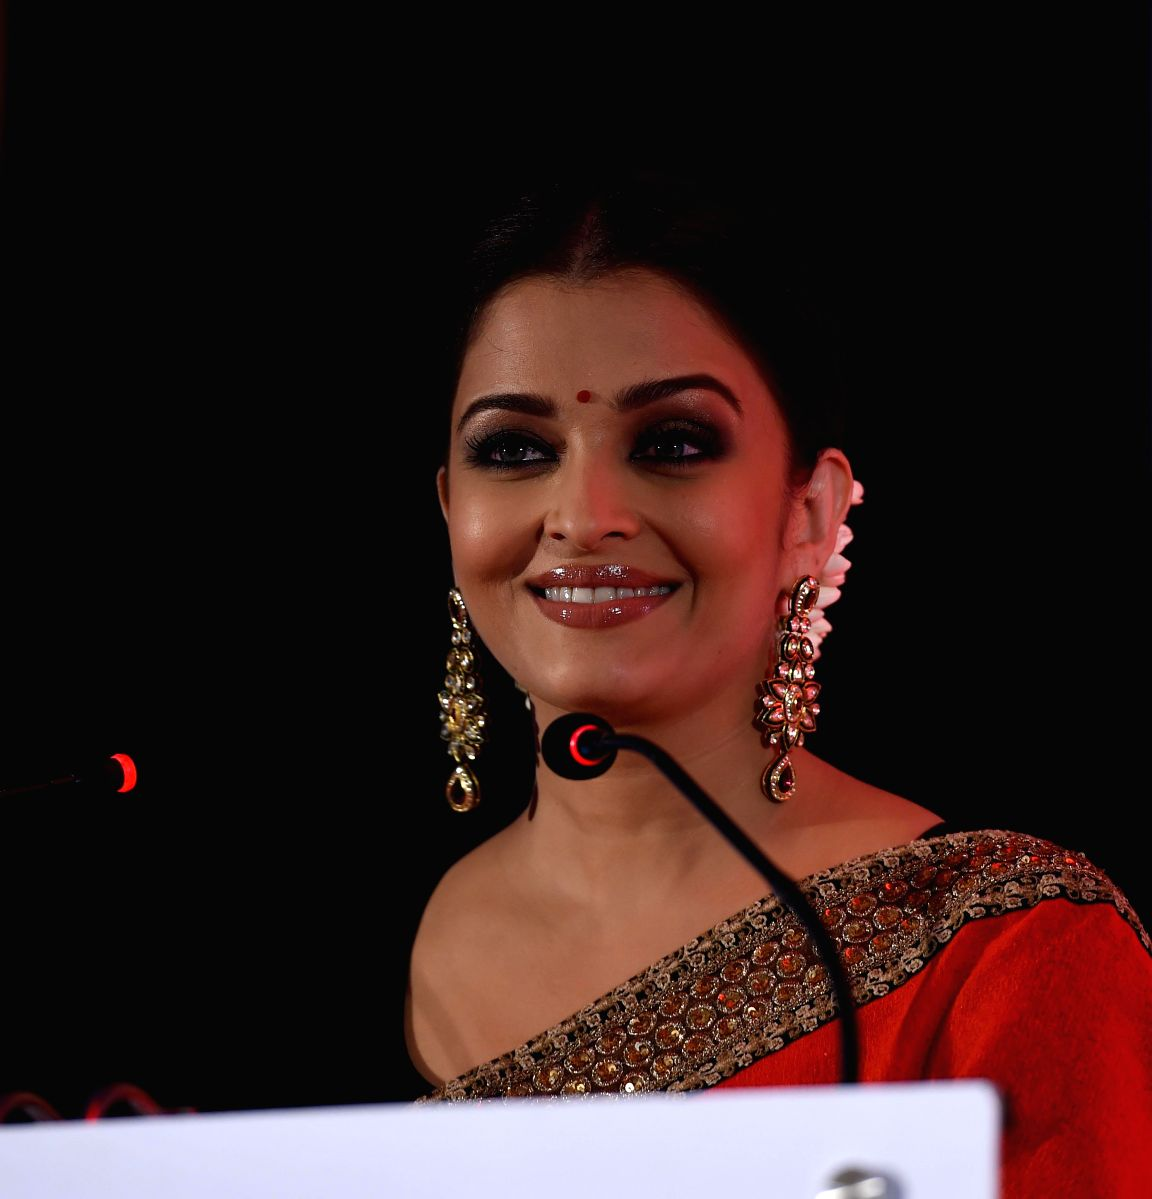 Aishwarya is the epitome of grace in this lovely red brocade saree